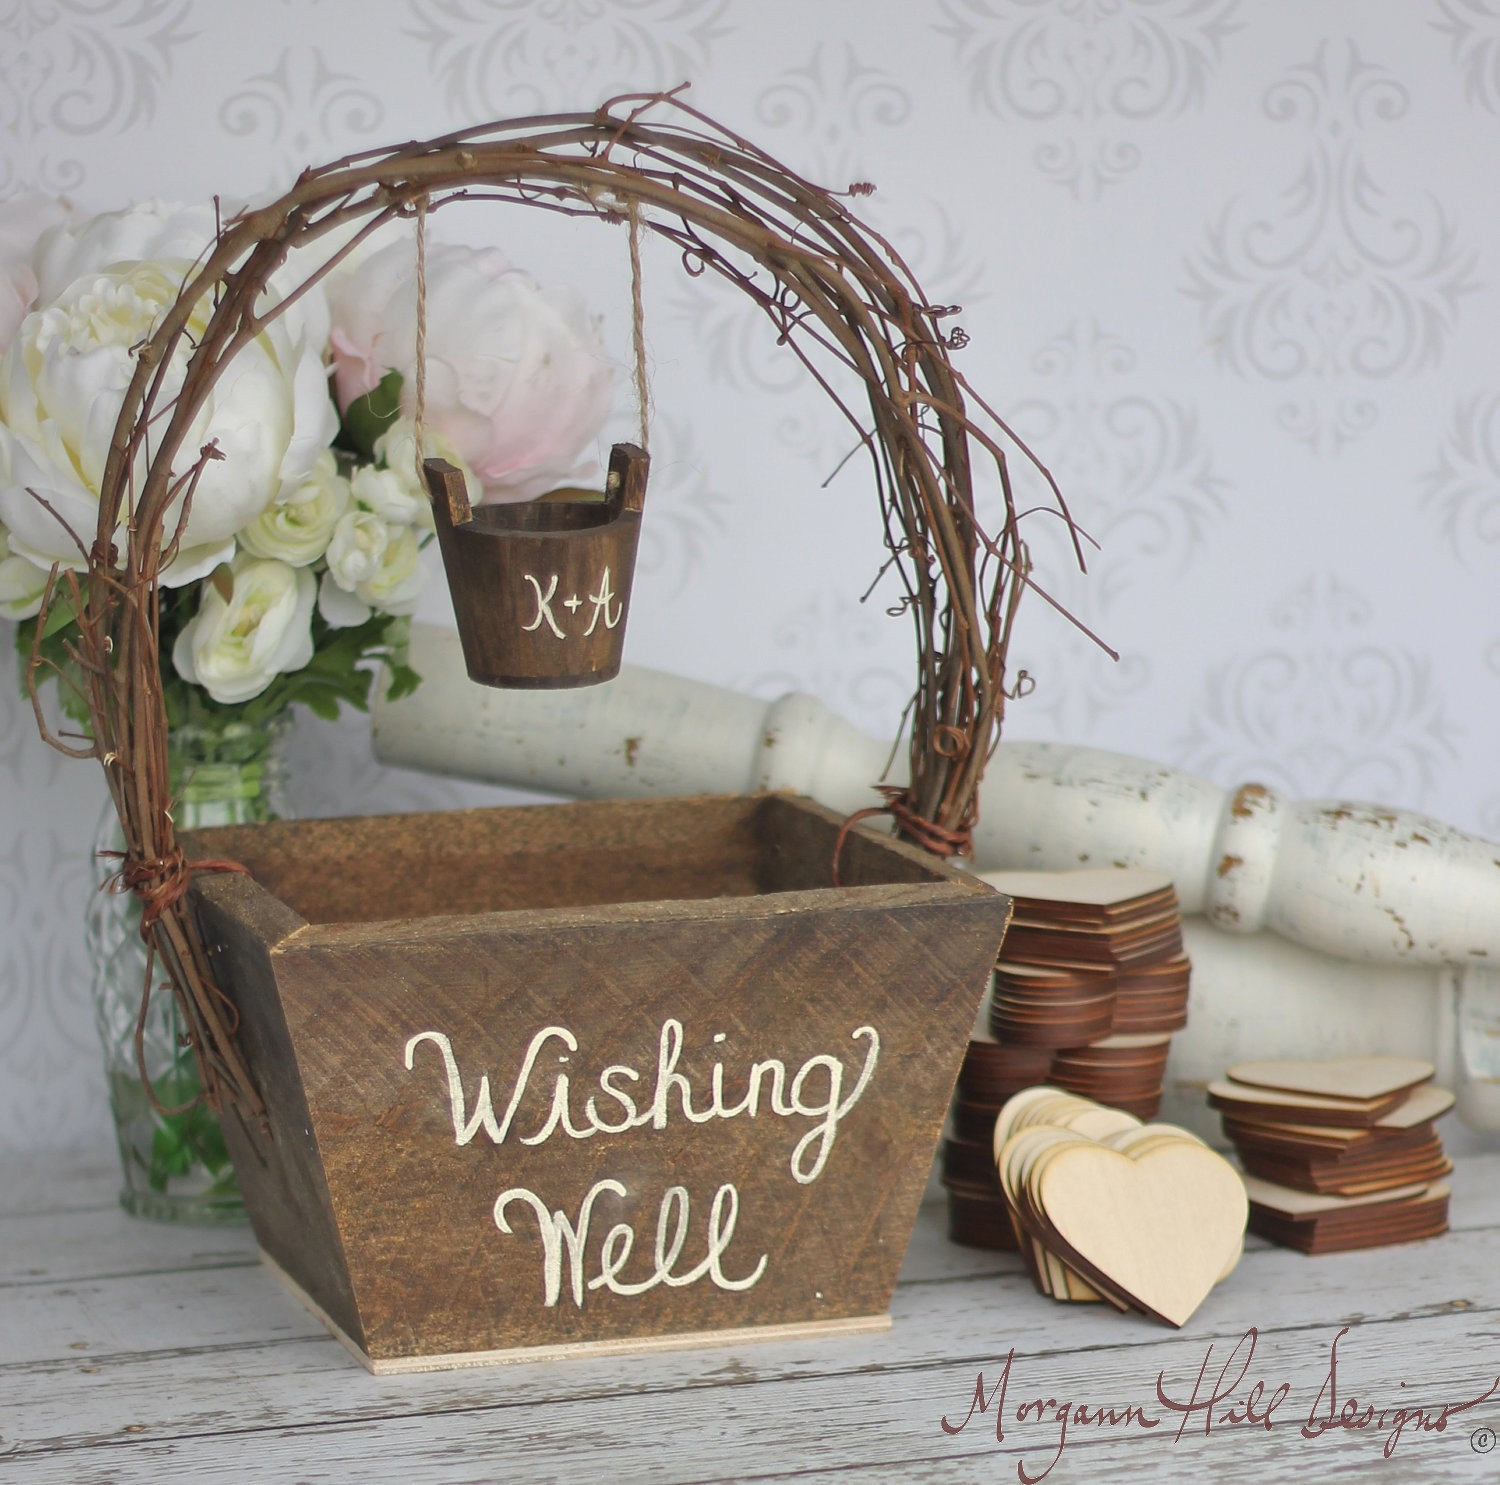 Cute Rustic Wedding Ideas: 39 Rustic Chic Wedding Decoration Ideas